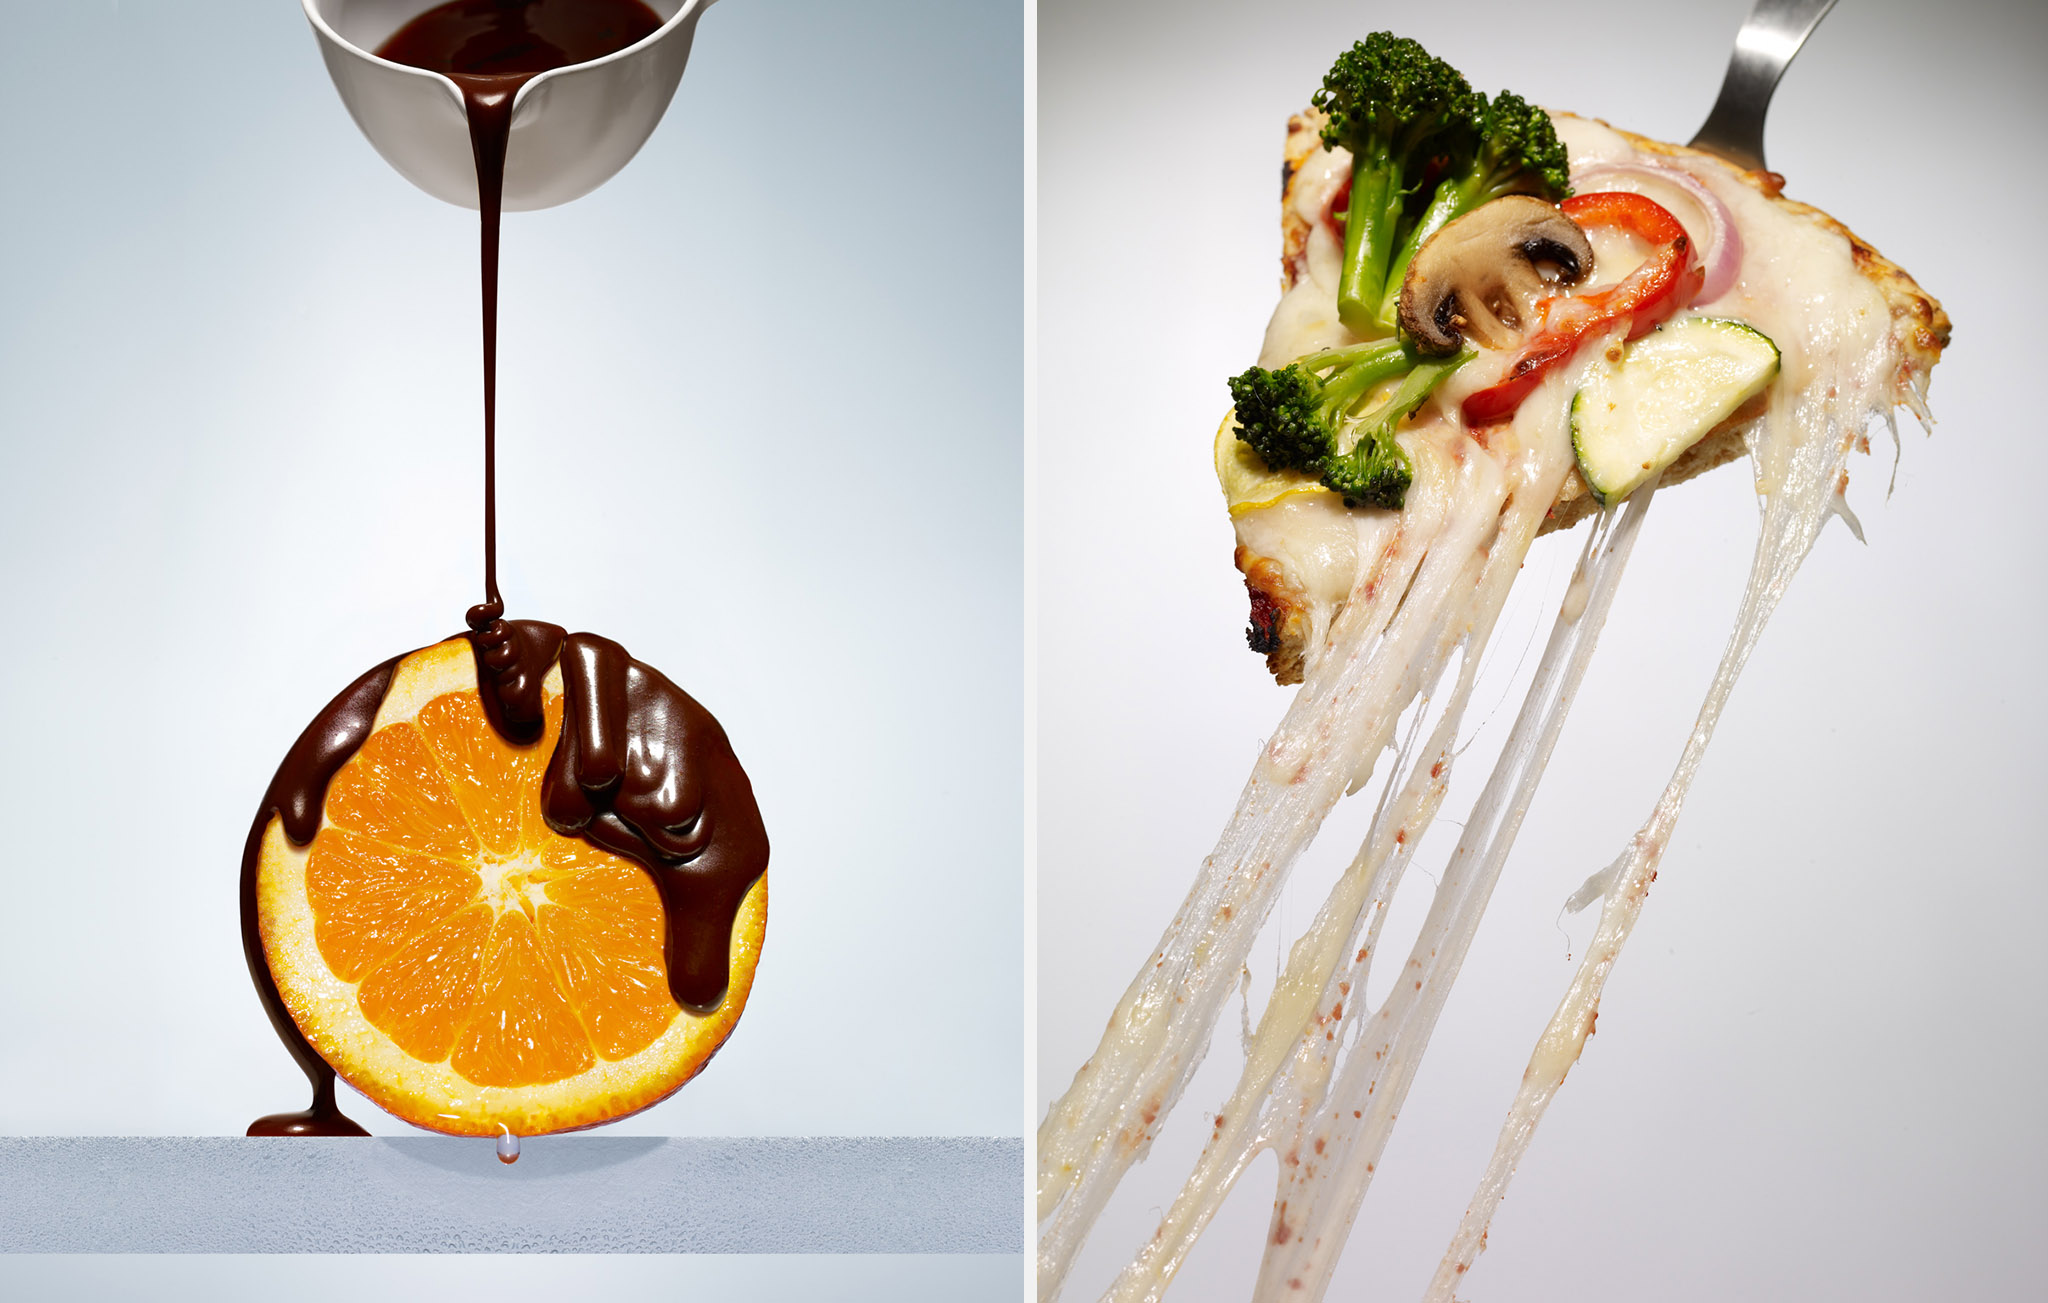 091_chocolate_drip_orange_120_v5.jpg